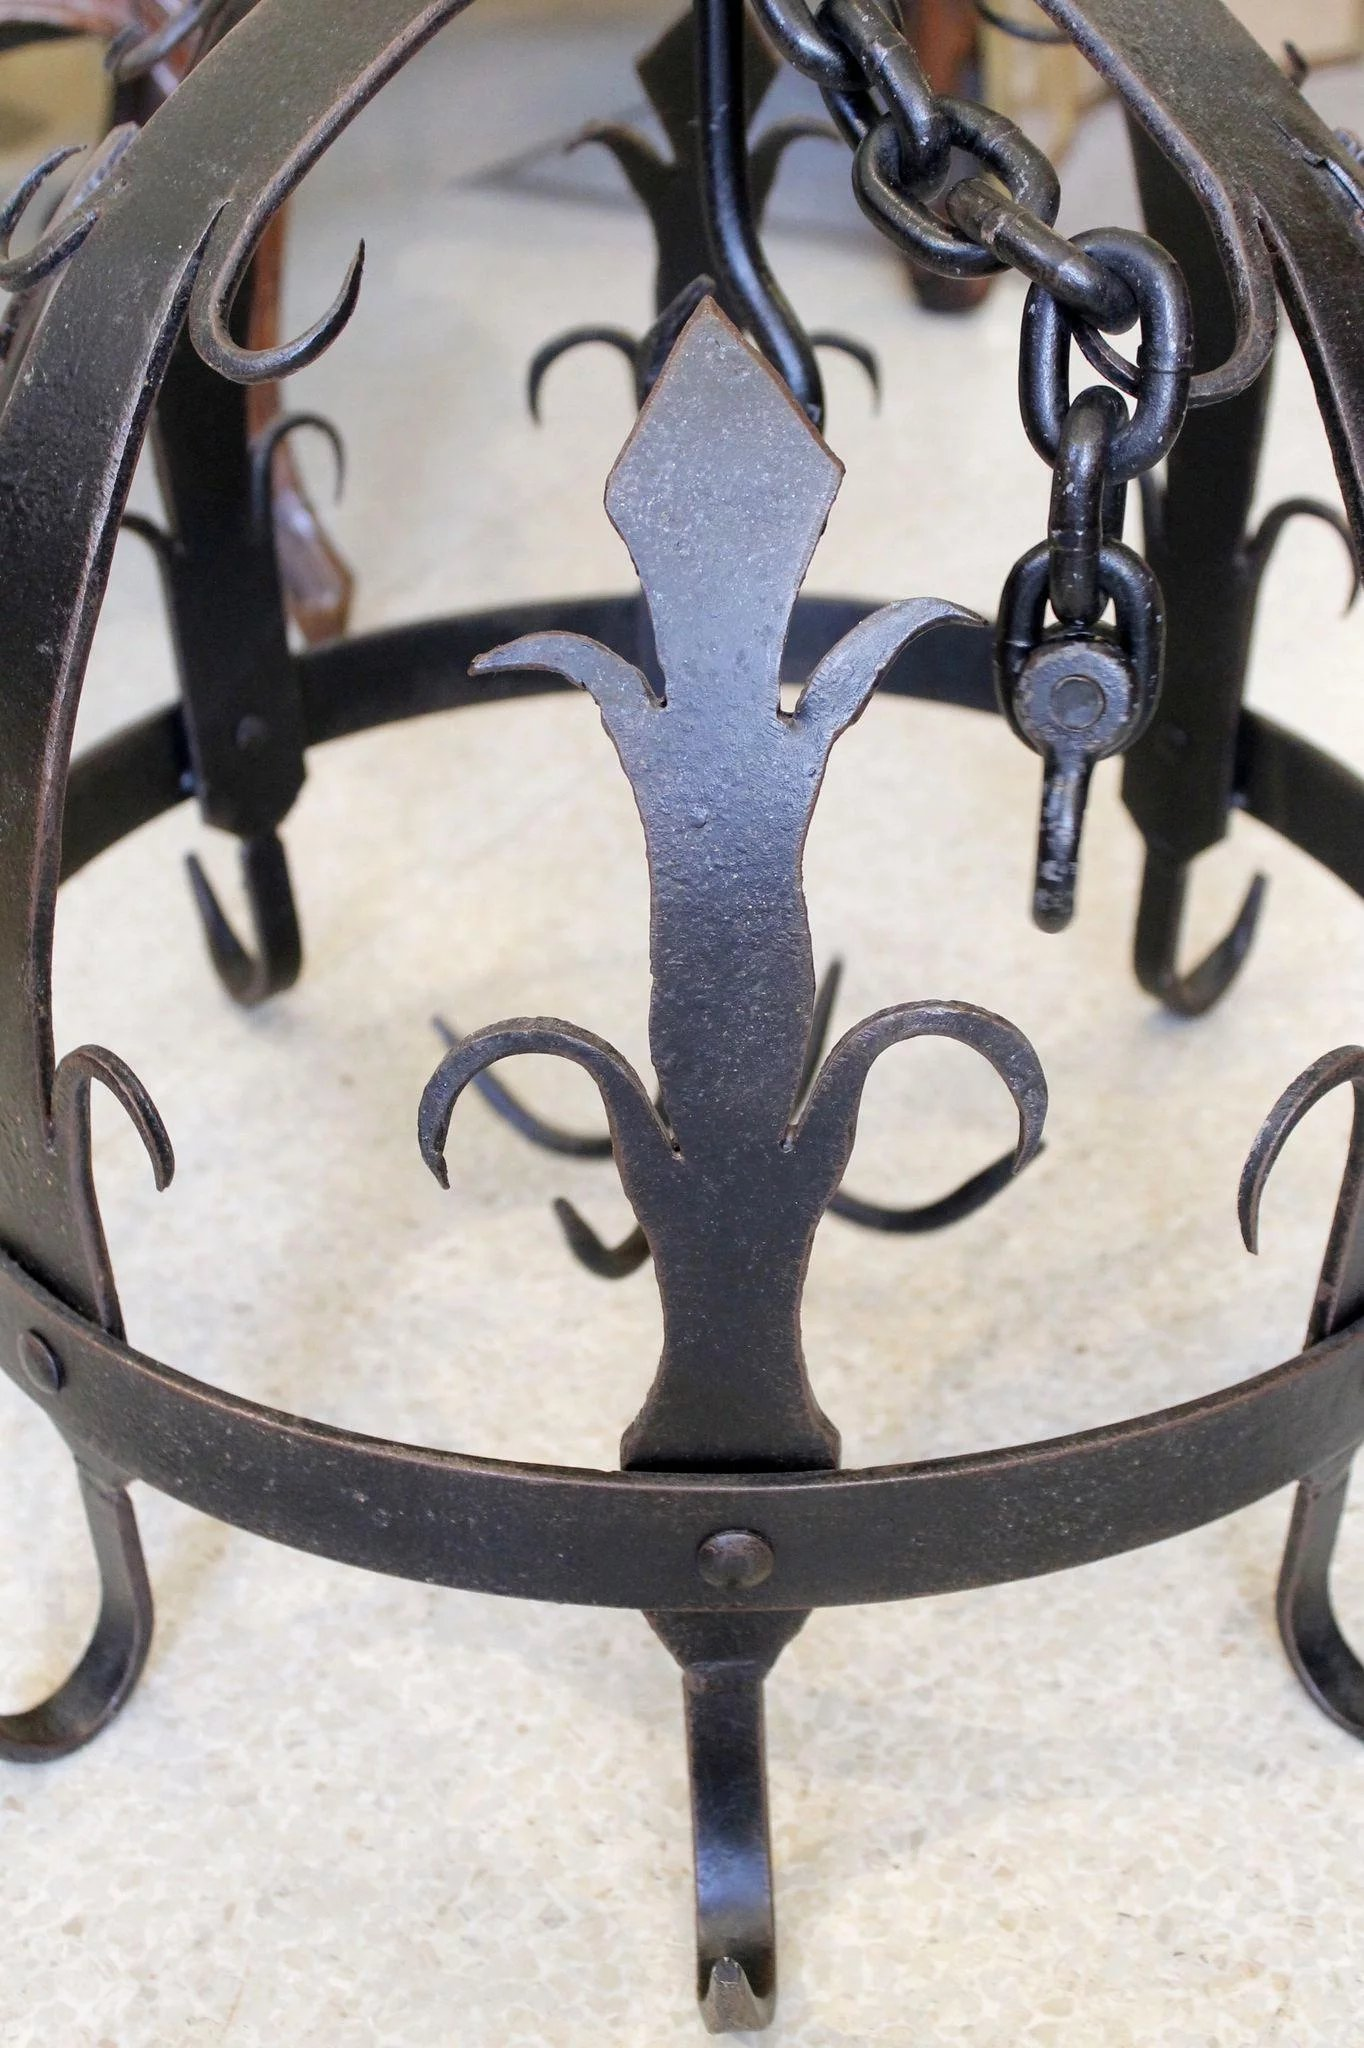 Ornamental Wrought Iron Pot Or Herb Drying Rack